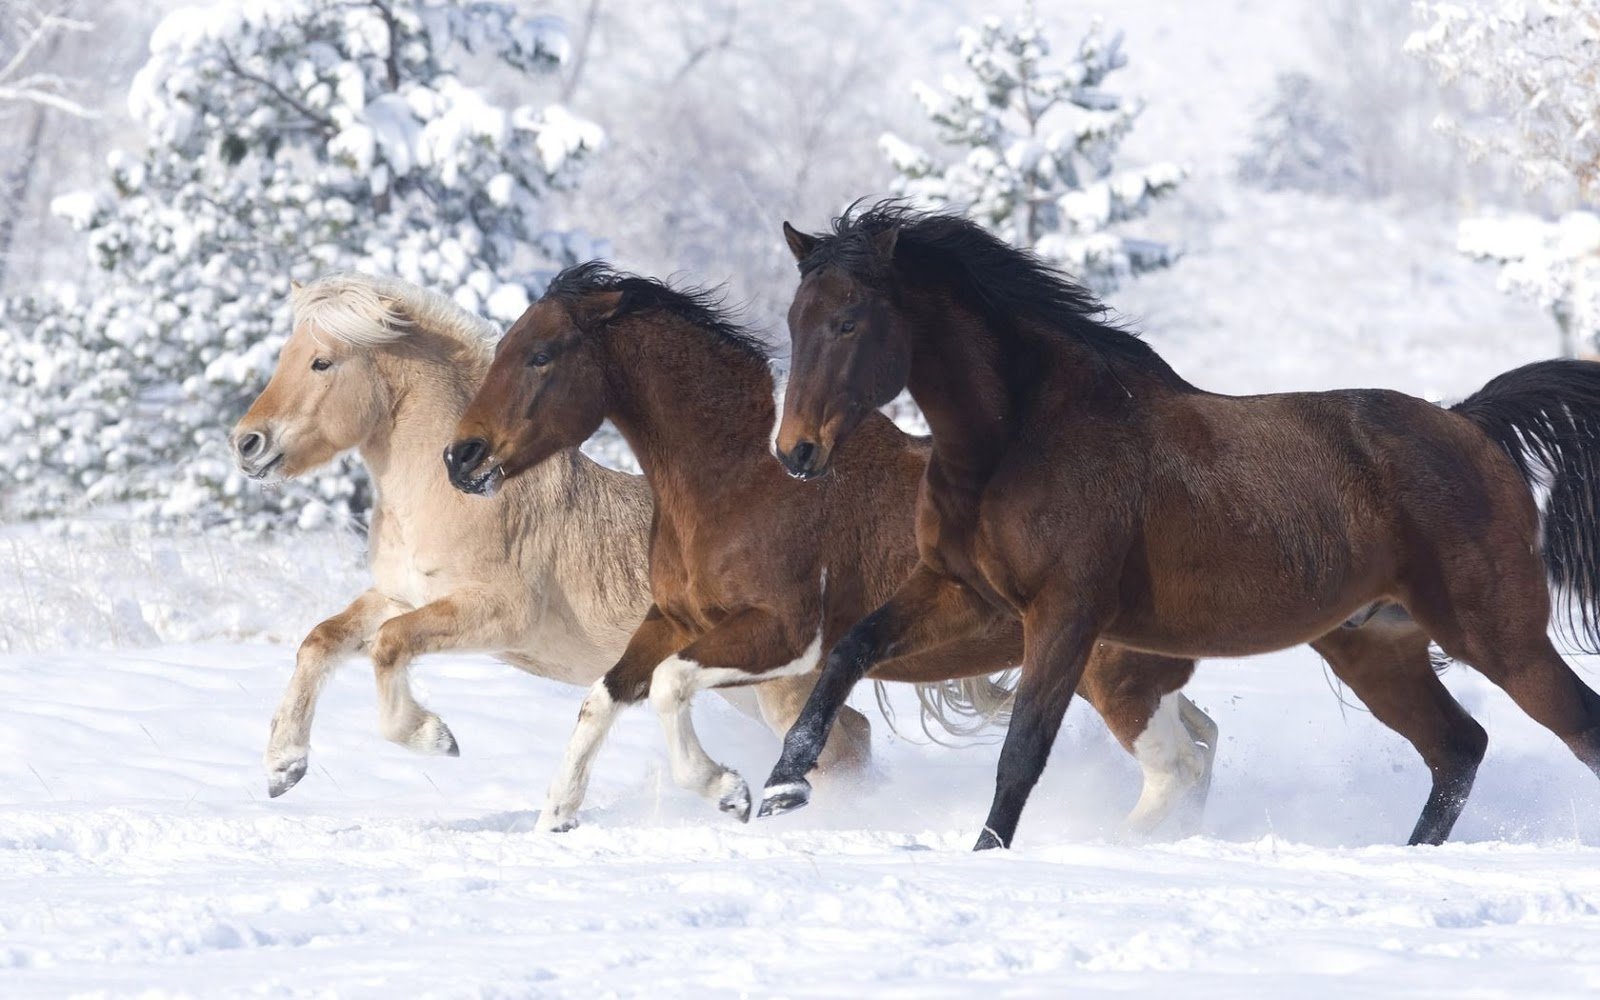 Good   Wallpaper Horse Dark Brown - Running+White+Horse+In+Snow+wallpaper+(1)  You Should Have_46378.jpg